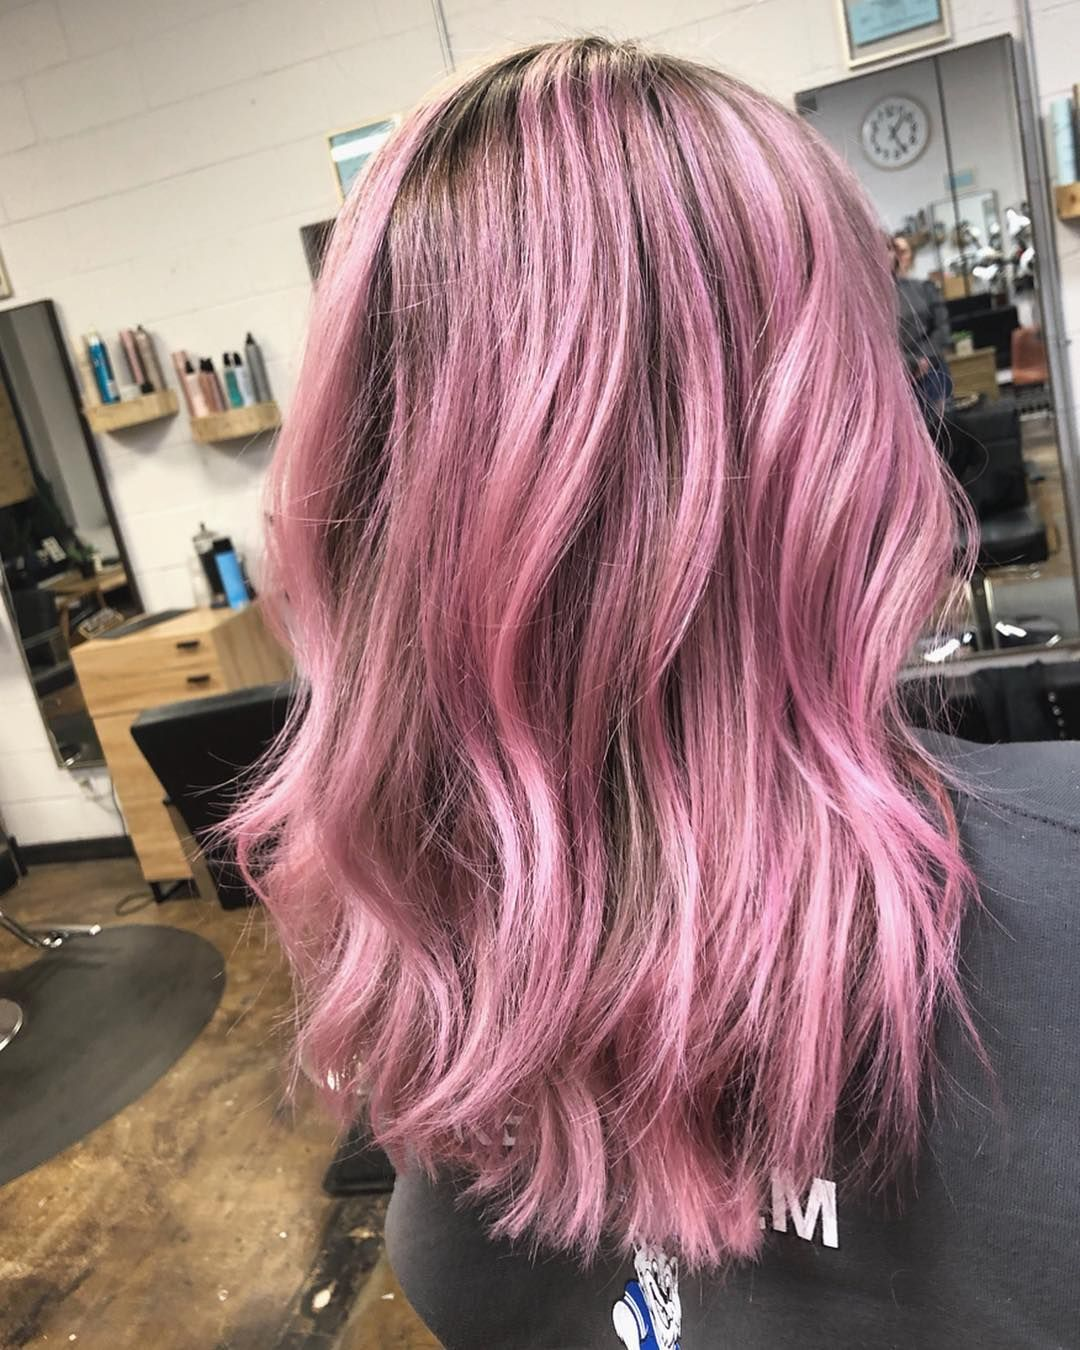 Spring We Are Ready For You Haircolor Pink Pinkhair Love Hair Bala Lavender Hair Hair Color Hair Styles